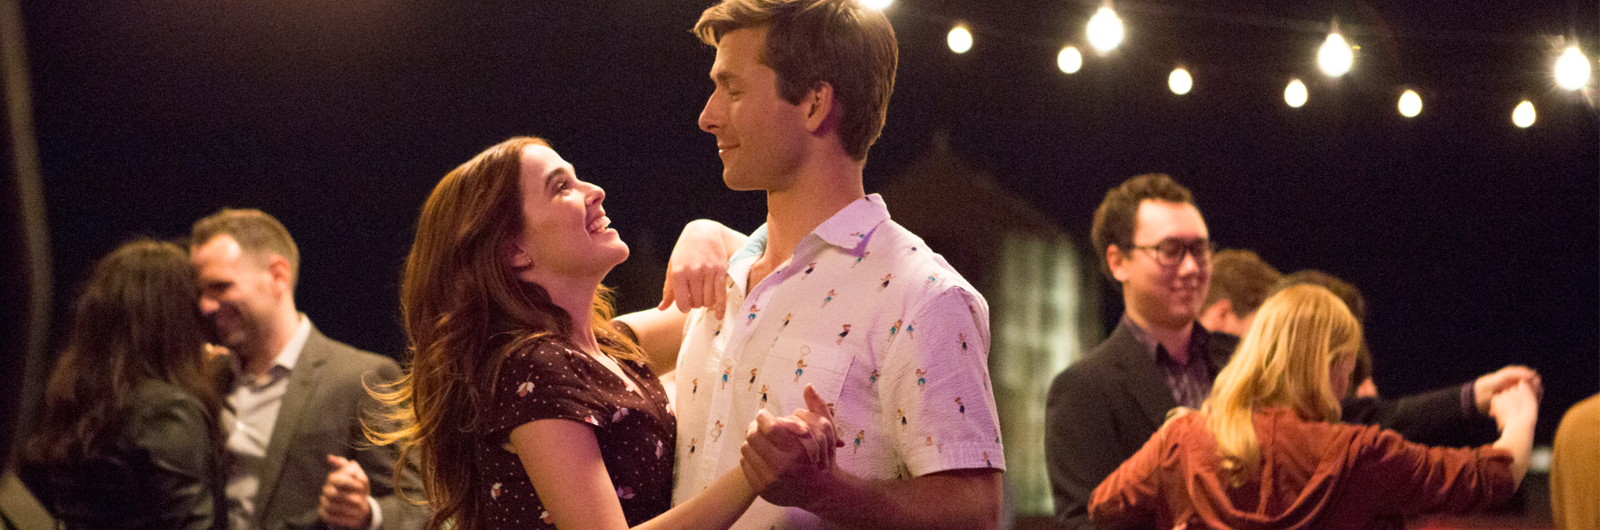 Pictured: Zoey Deutch and Blake Jenner in Everybody Wants Some!!